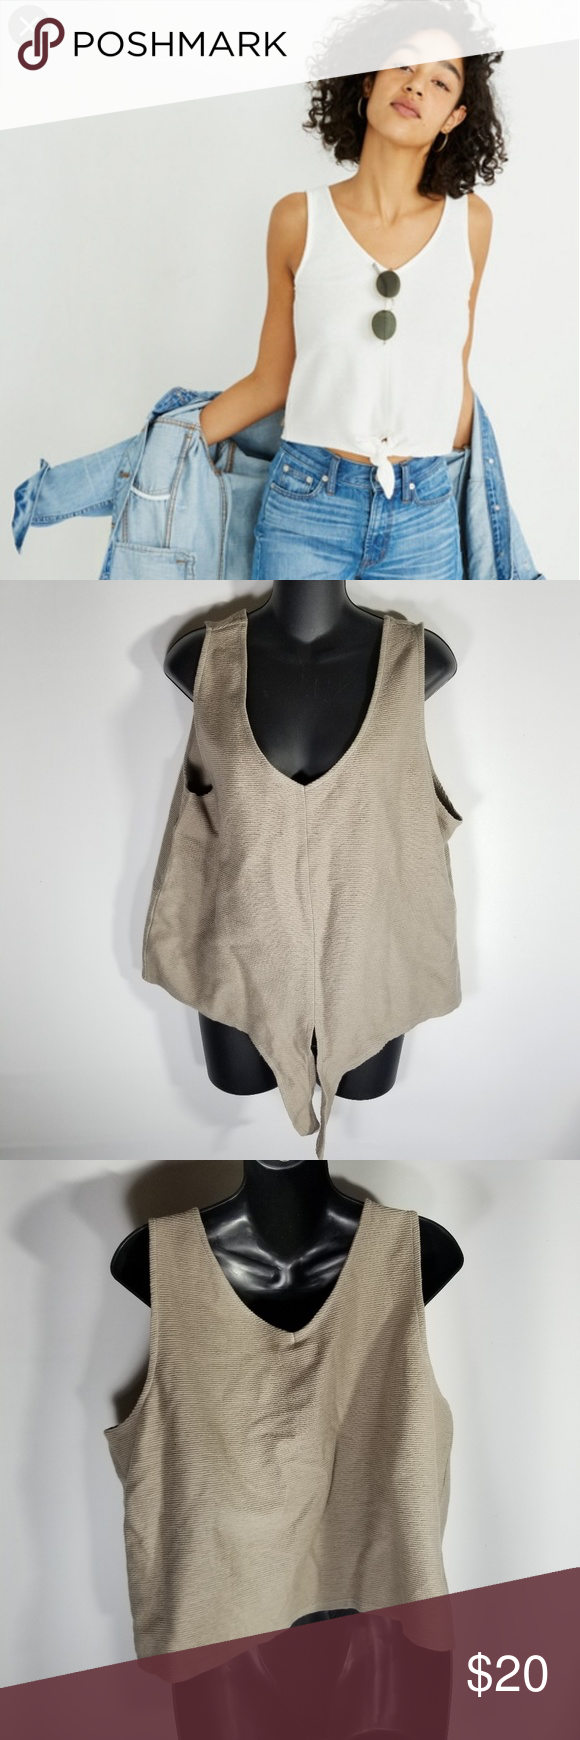 c005001f879 Madewell Texture   Thread Tie Front Tank Top Plus New with tags but has a  red mark in the front. Size XXL. Color is tan. Madewell Tops Tank Tops